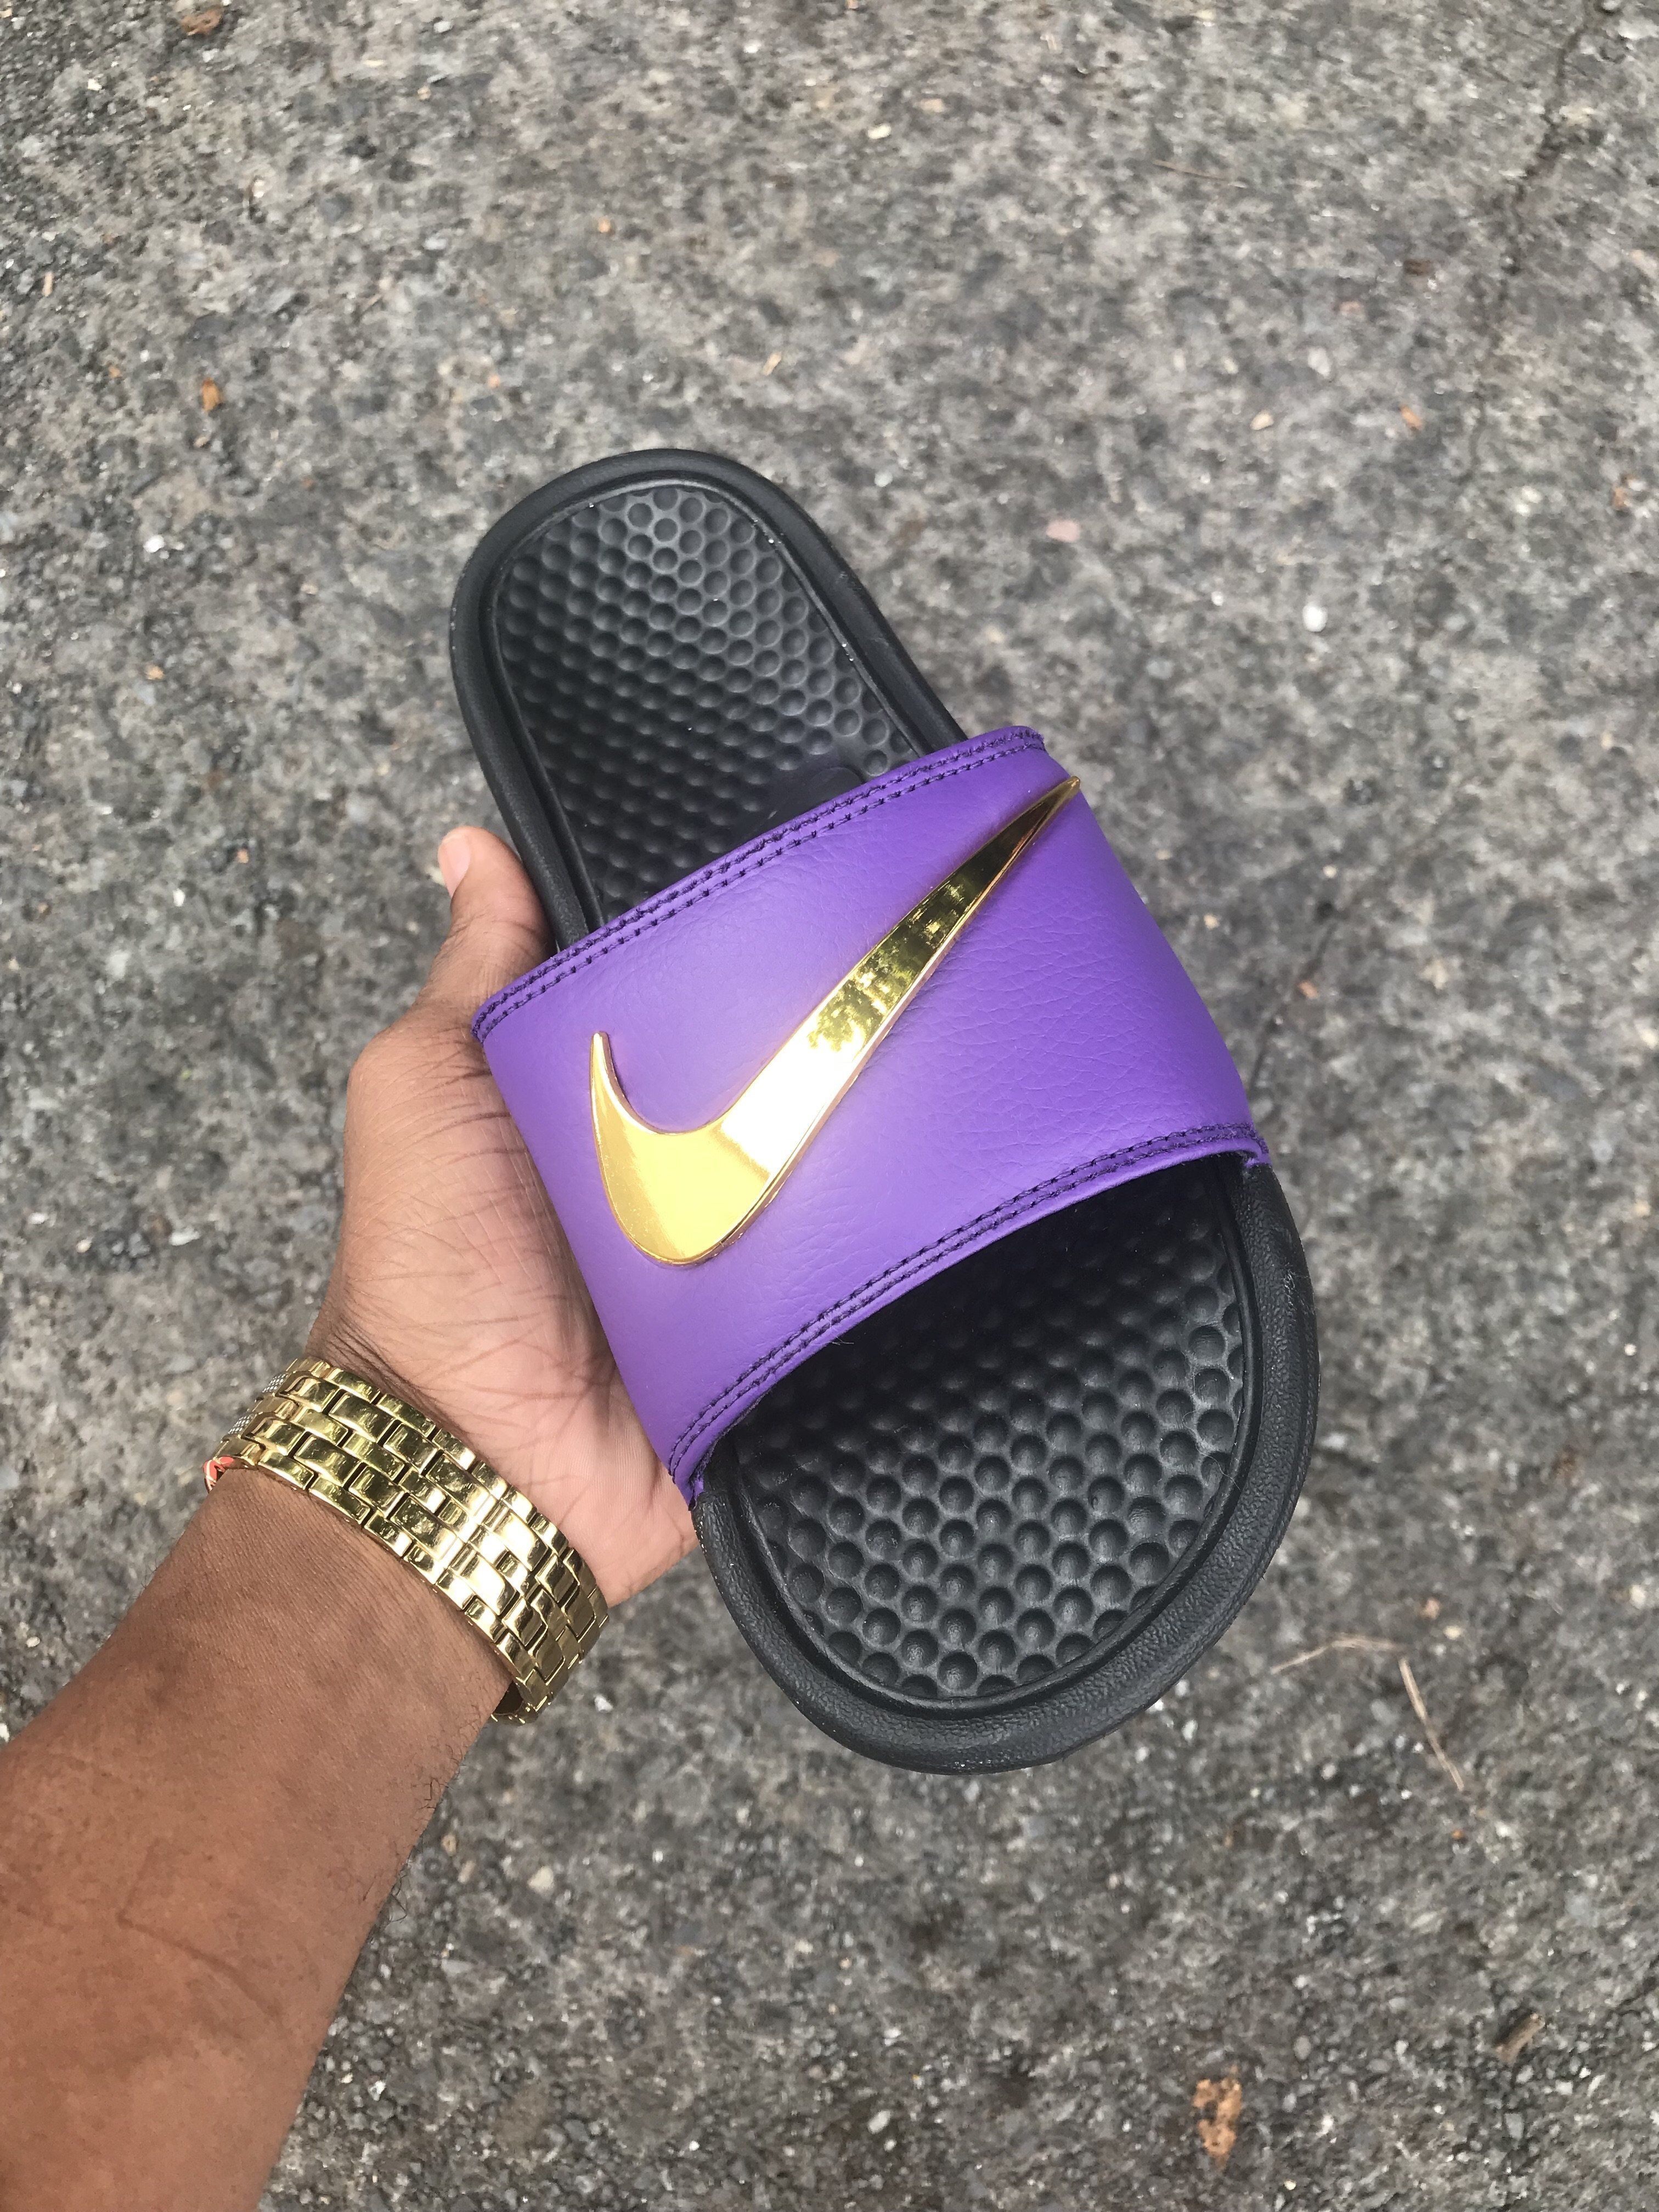 nike slippers purple and gold